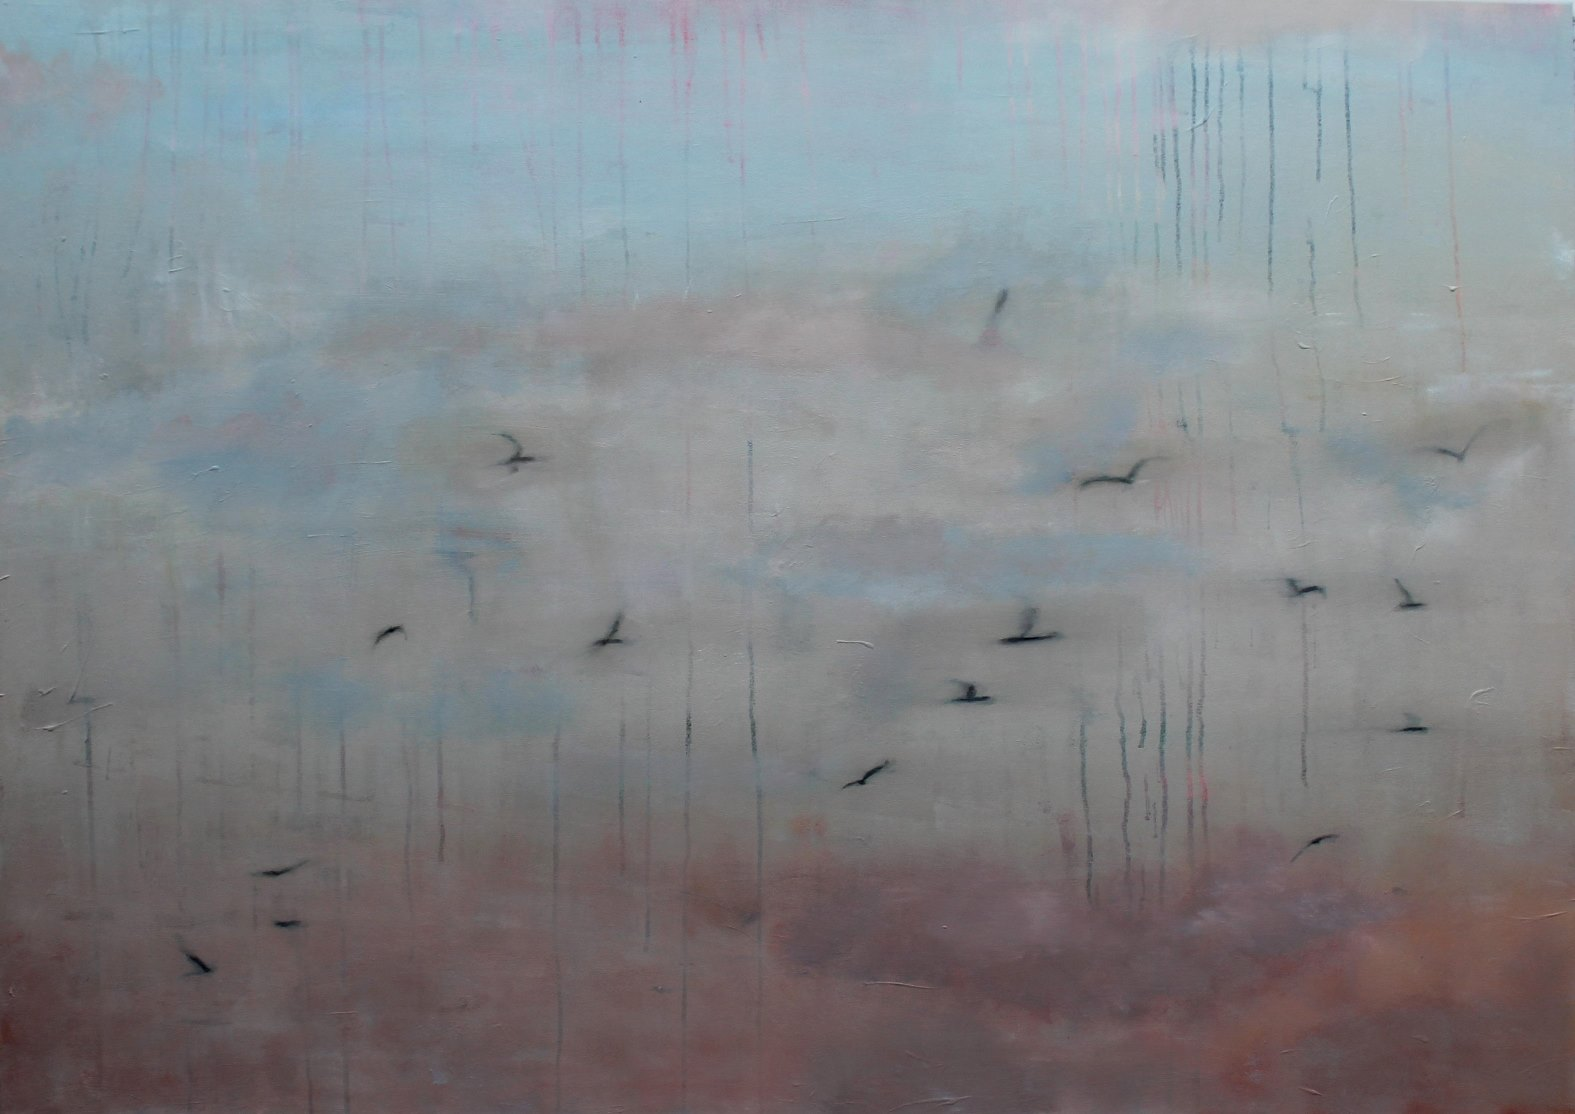 Birds # 1, 2015, mixed media, 100 x 140 cm